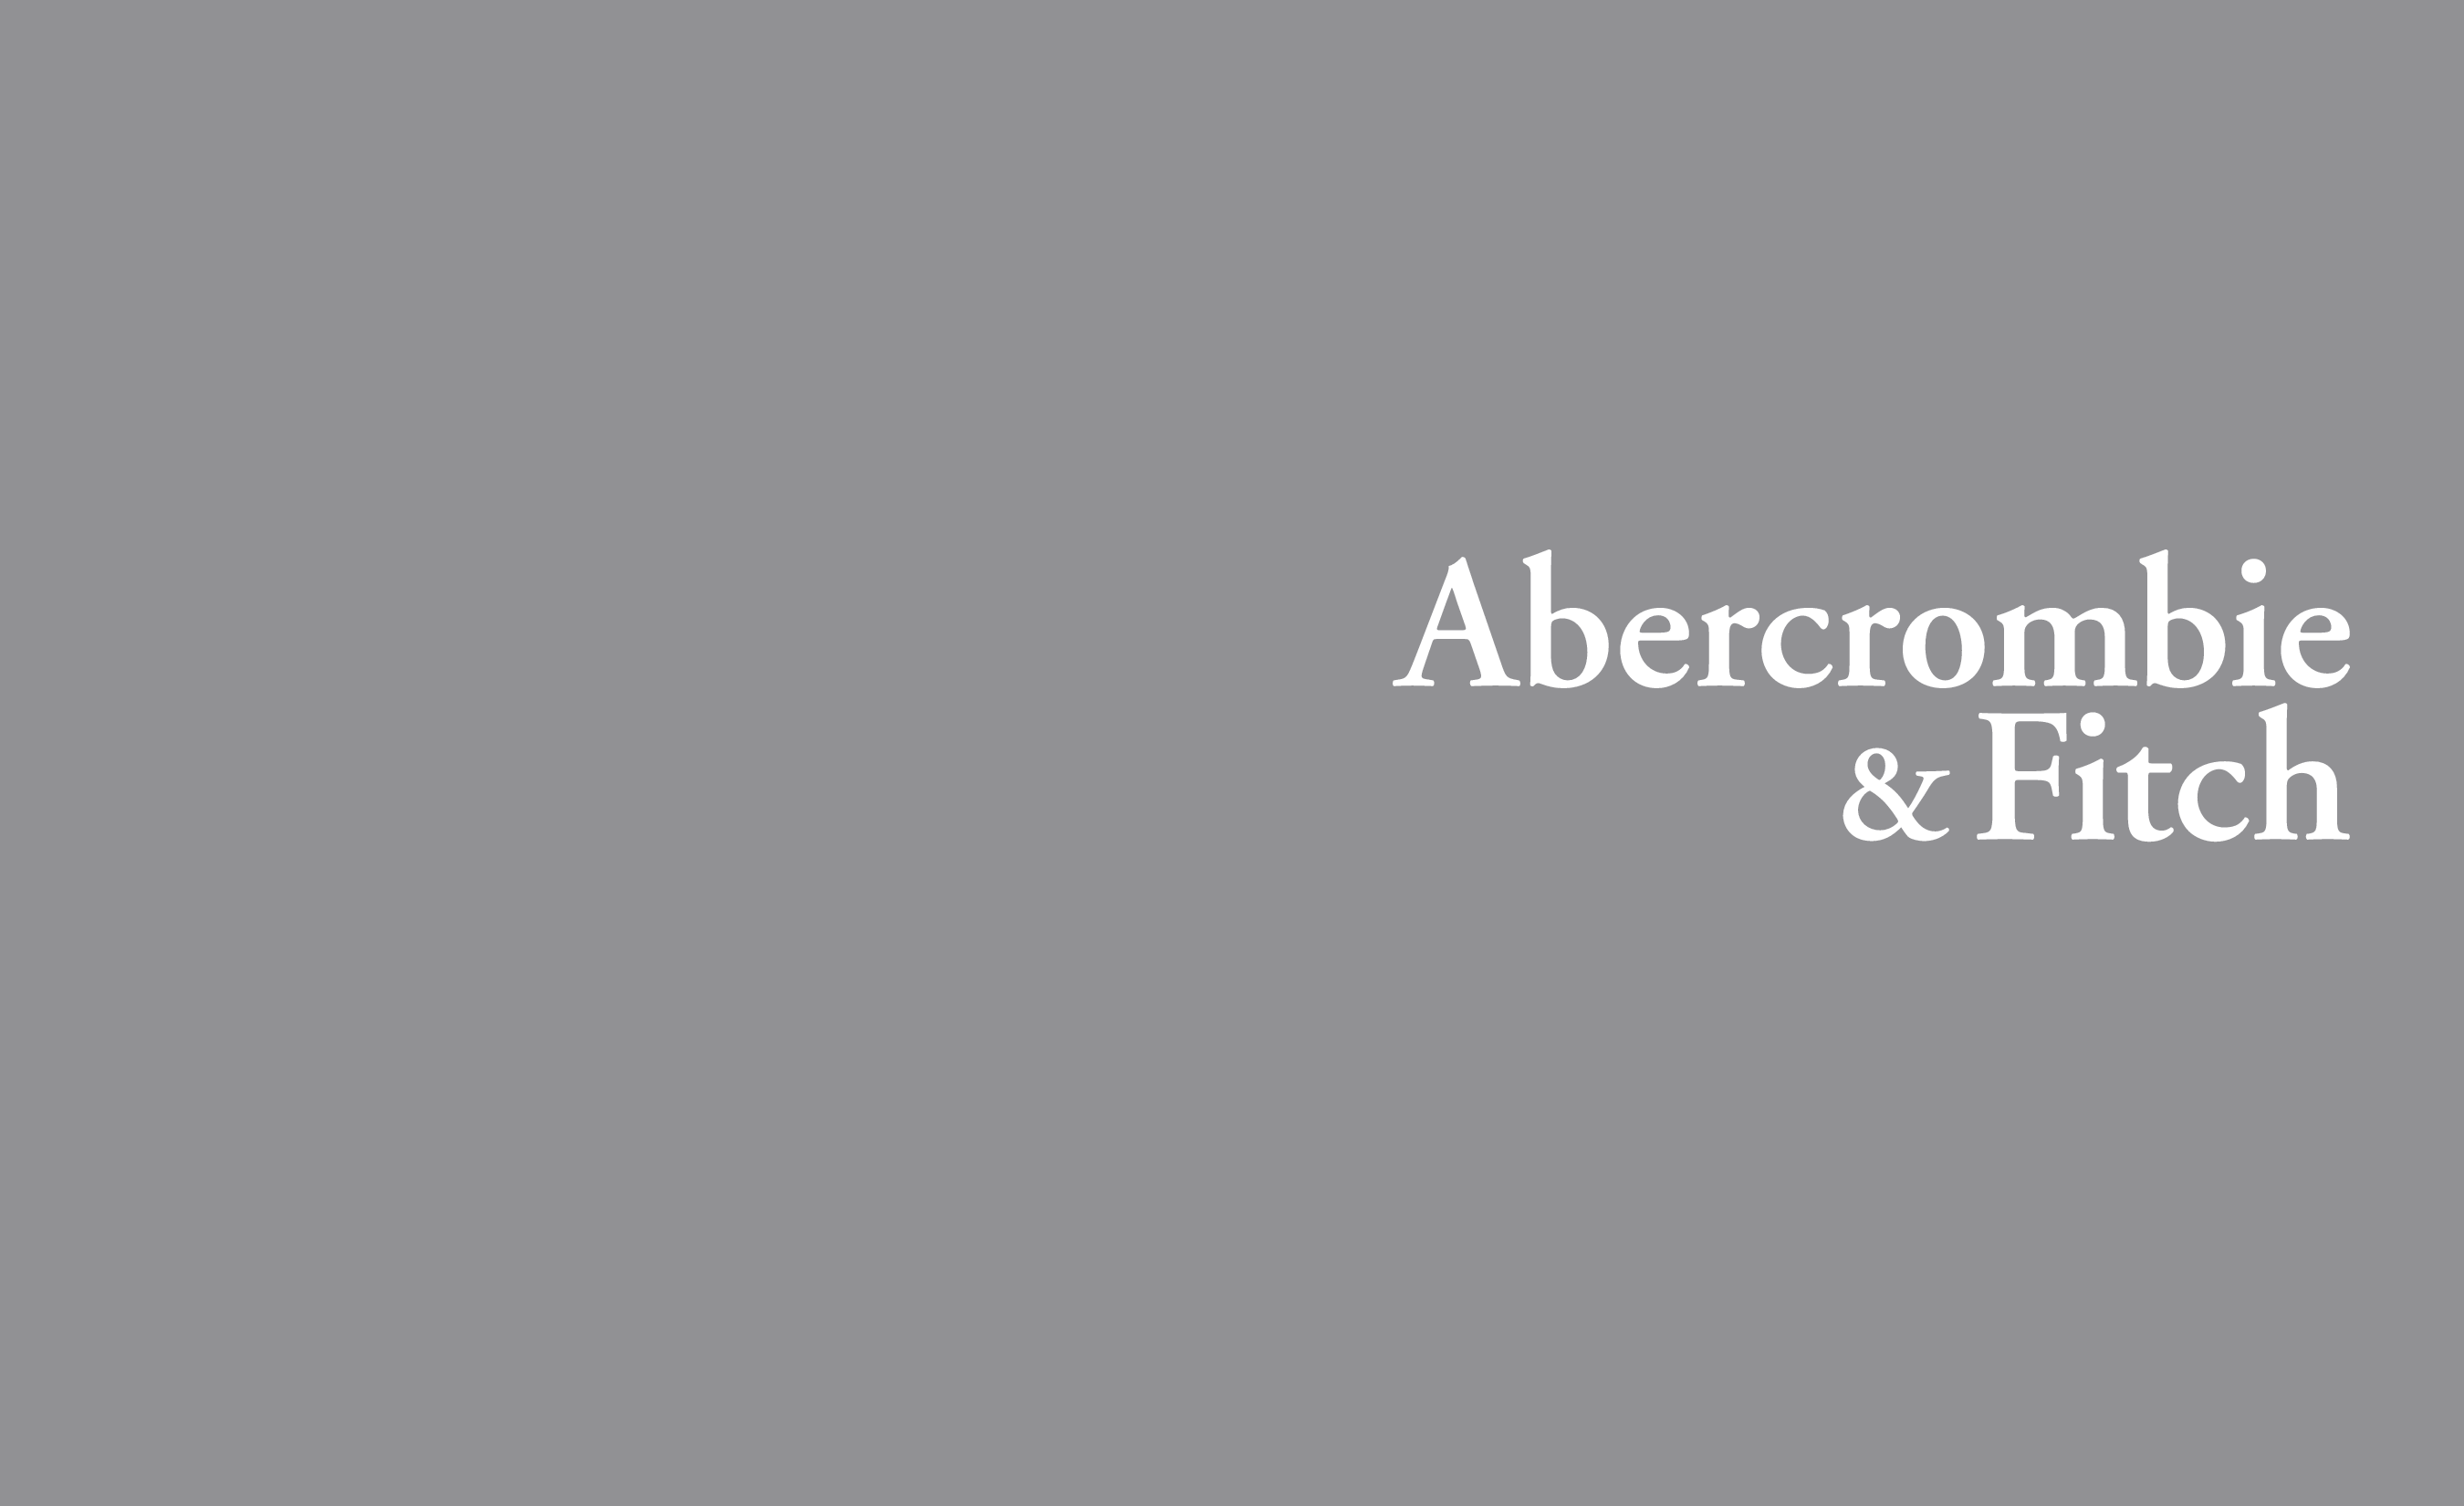 Abercrombie And Fitch Logo Wallpaper Wallpaper Christmas tree 2700x1650